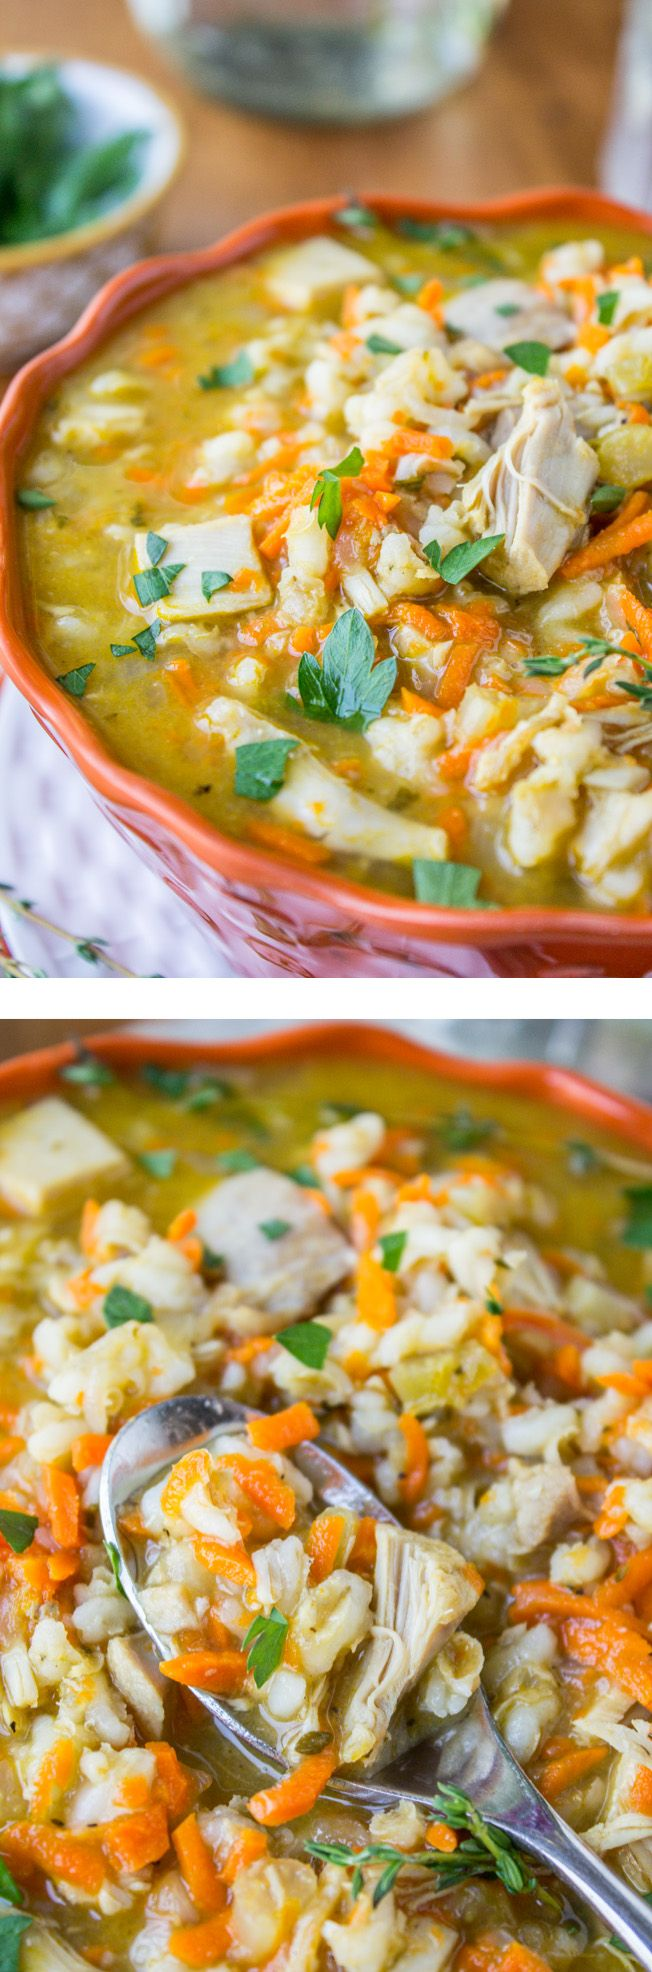 Turkey Barley Soup (Slow Cooker) from The Food Charlatan. Make this soup with all your Thanksgiving leftovers!: